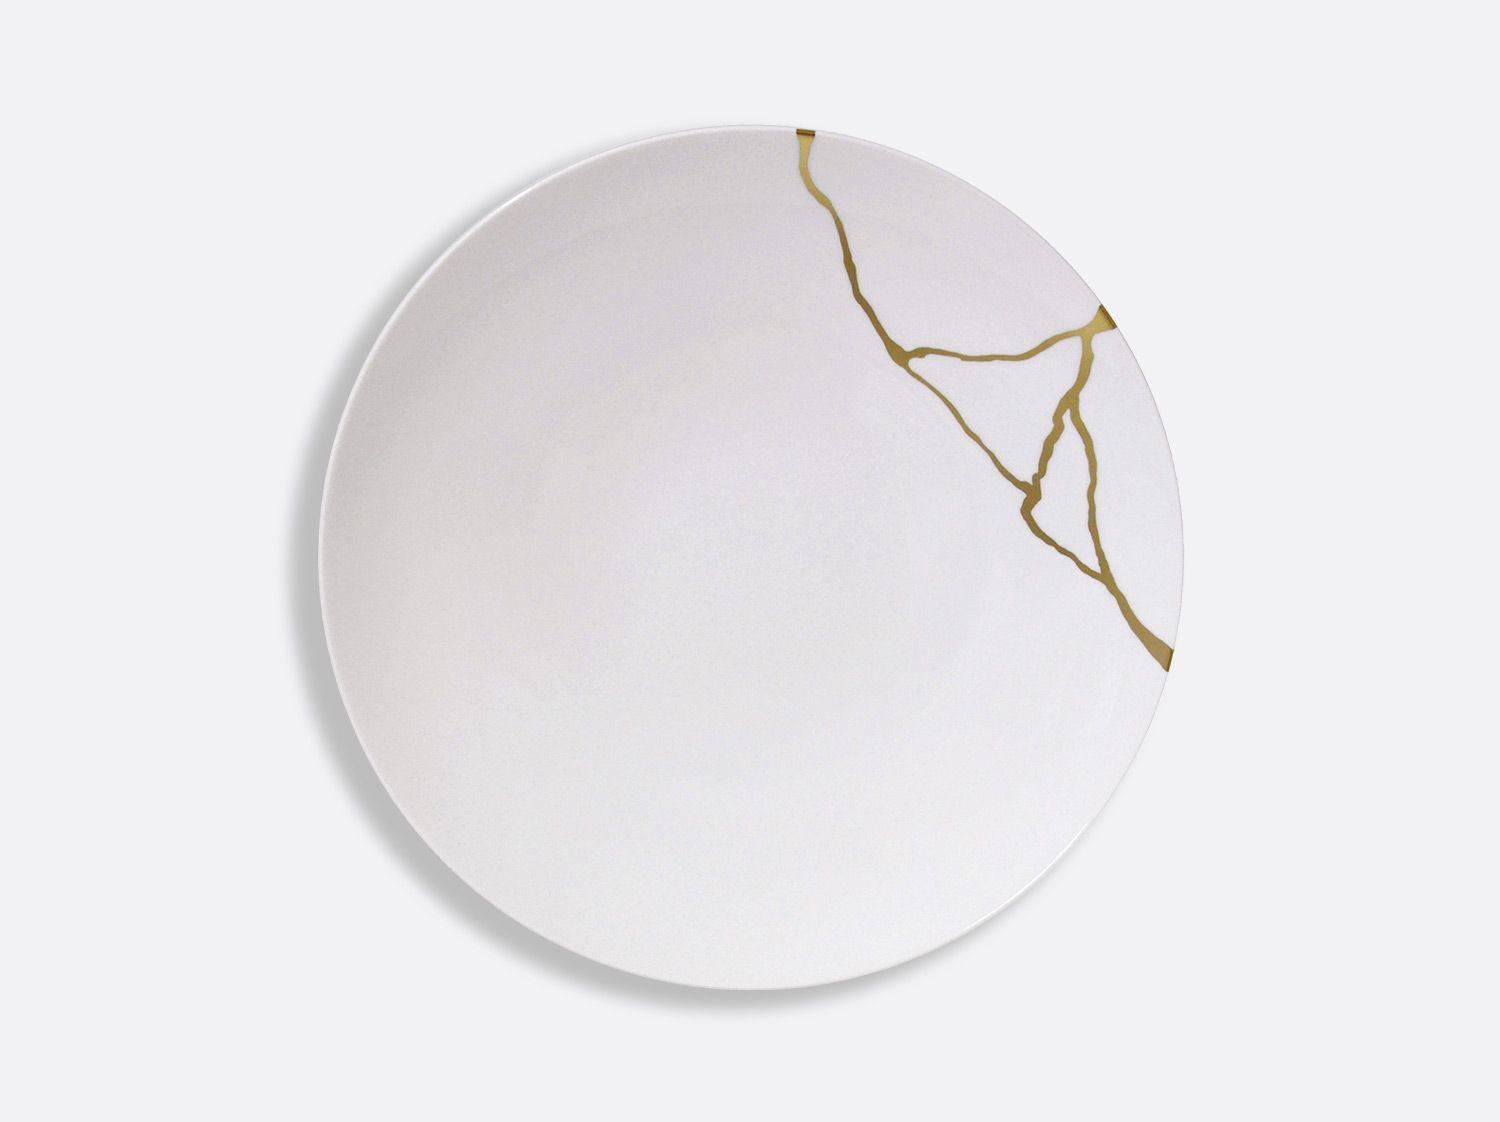 Assiette coupe à dîner 27 cm en porcelaine de la collection Kintsugi Bernardaud